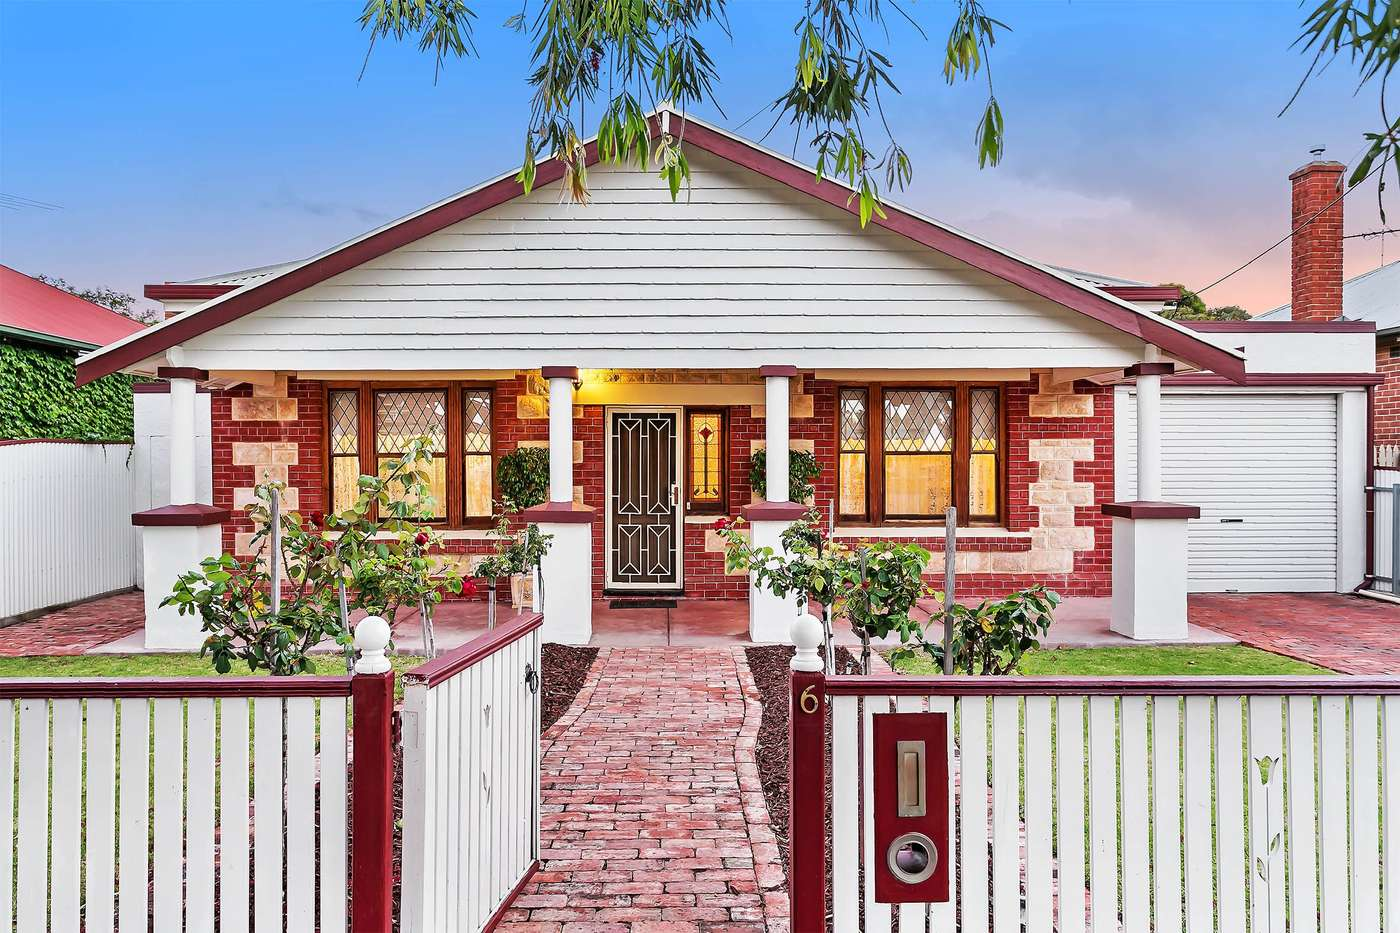 Main view of Homely house listing, 6 Olive Street, Largs Bay, SA 5016